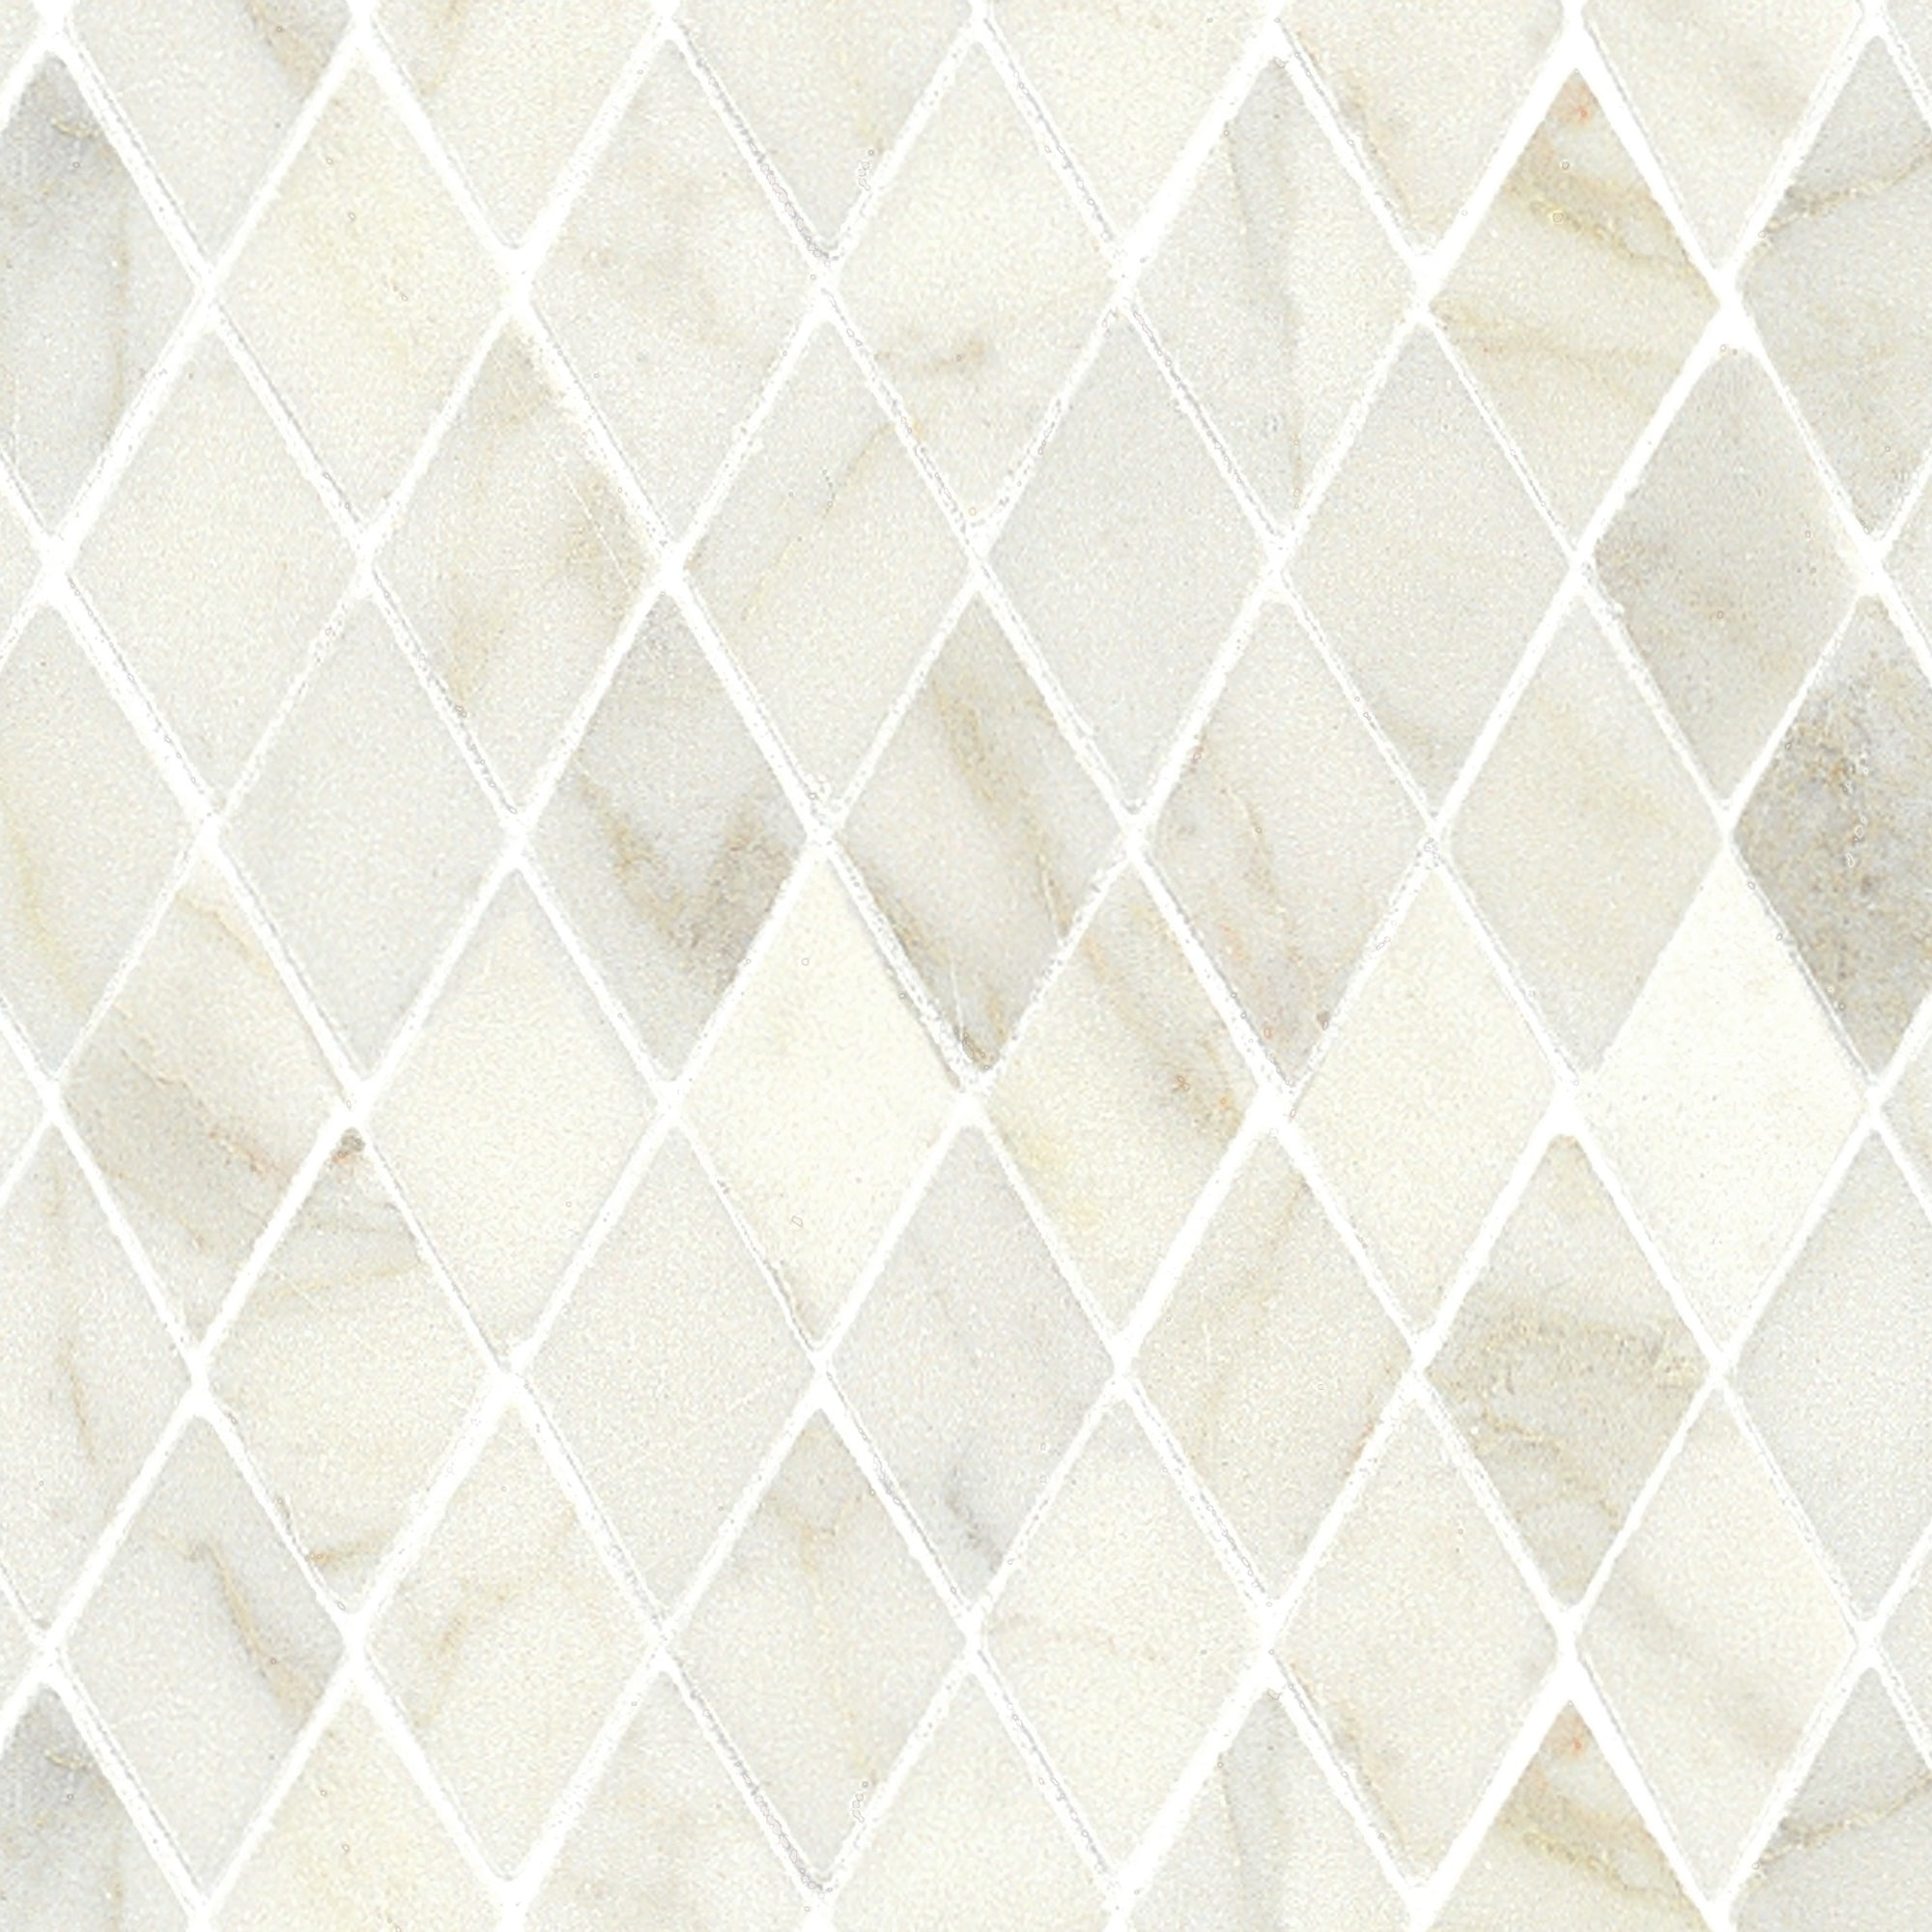 Mosaic Calacatta Gold Marble Swatch Card  Polished Samples Diamond product photo